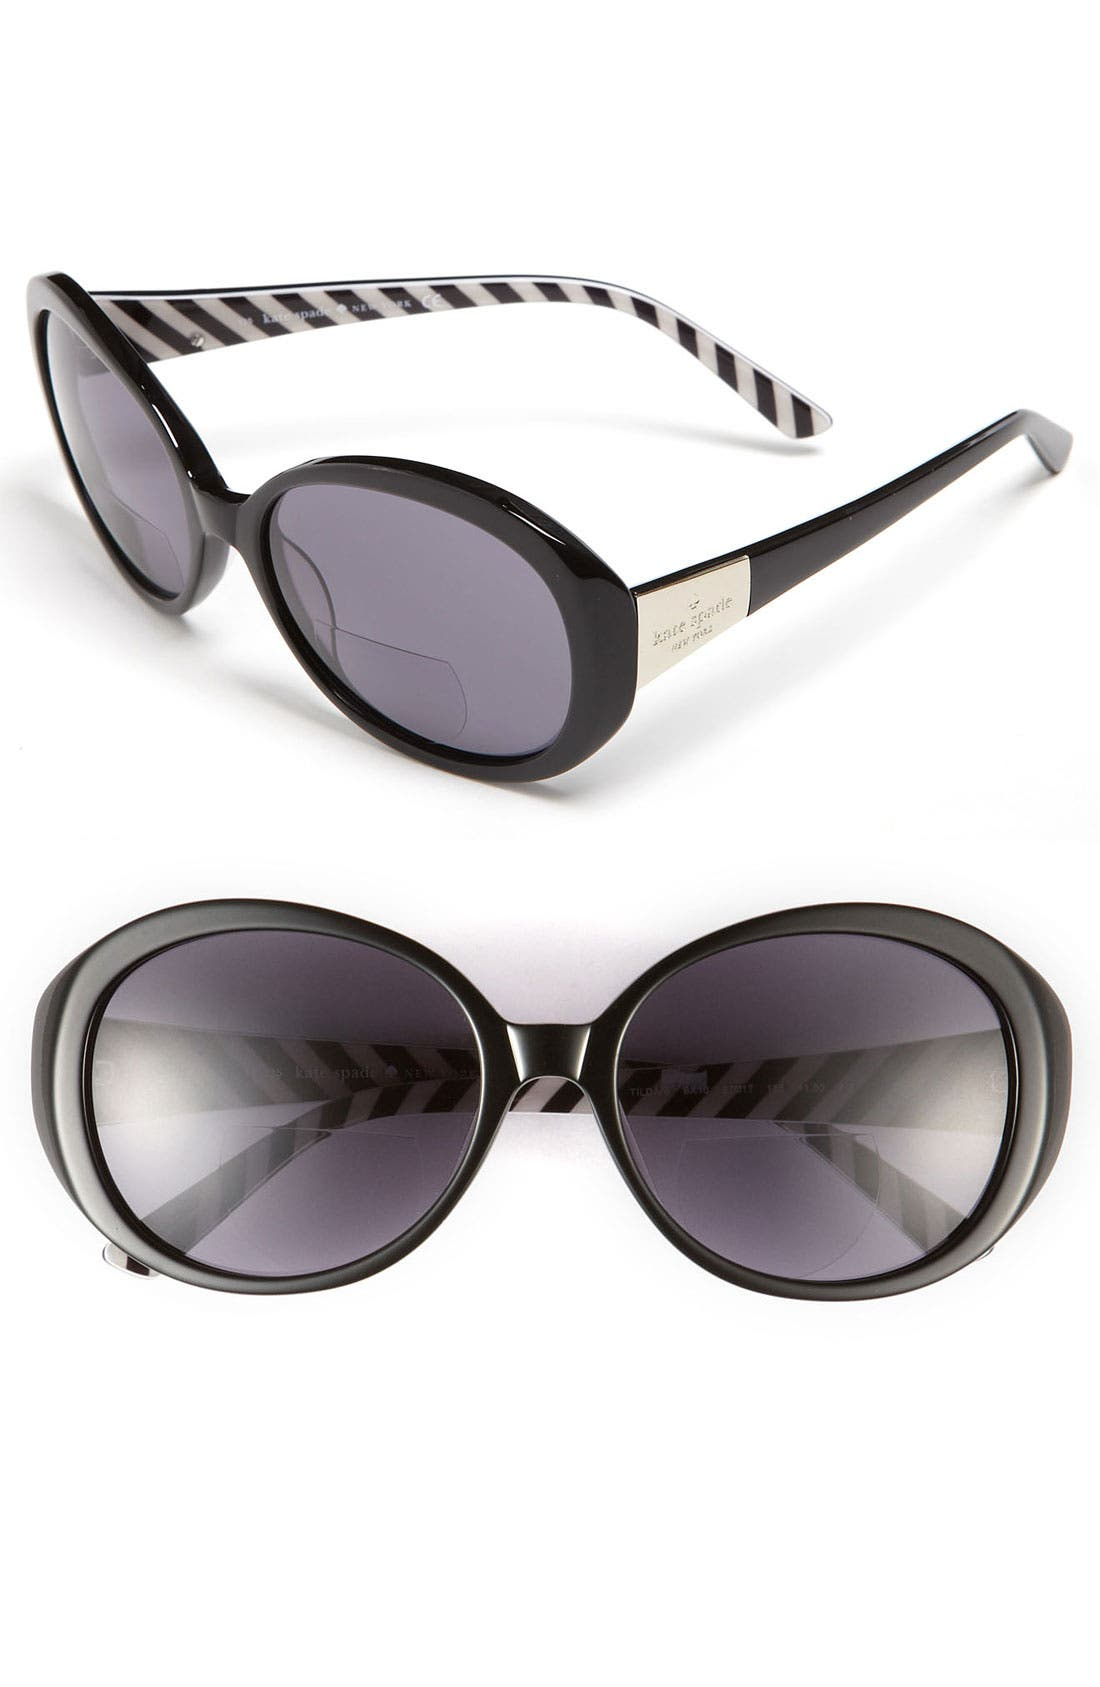 Main Image - kate spade new york 'tilda' reading sunglasses